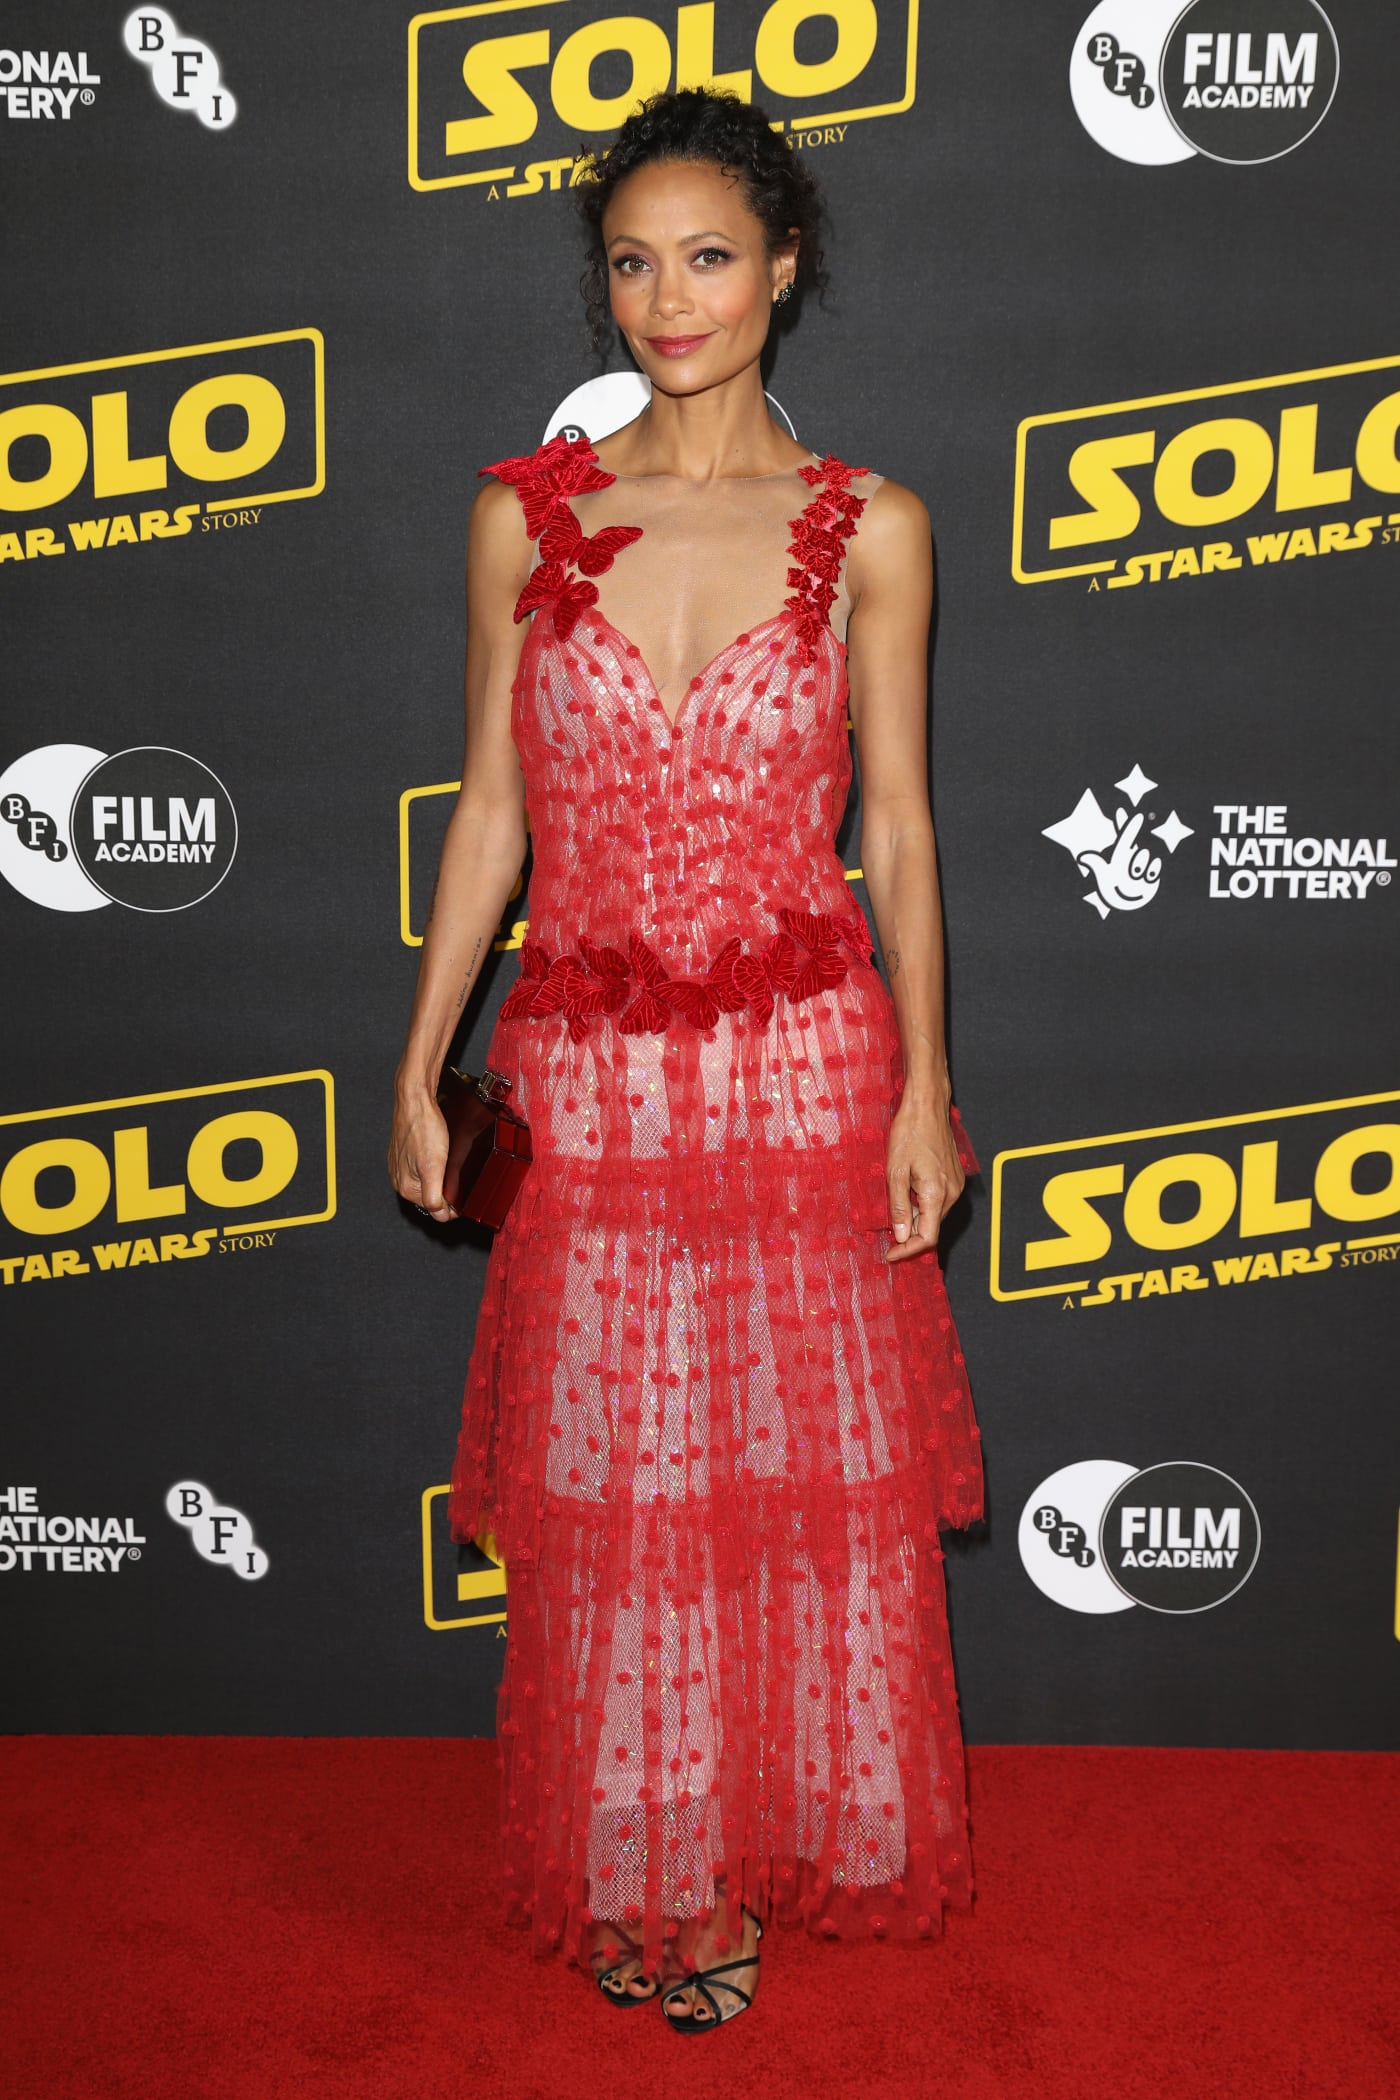 Thandie Newton in Vivienne Westwood